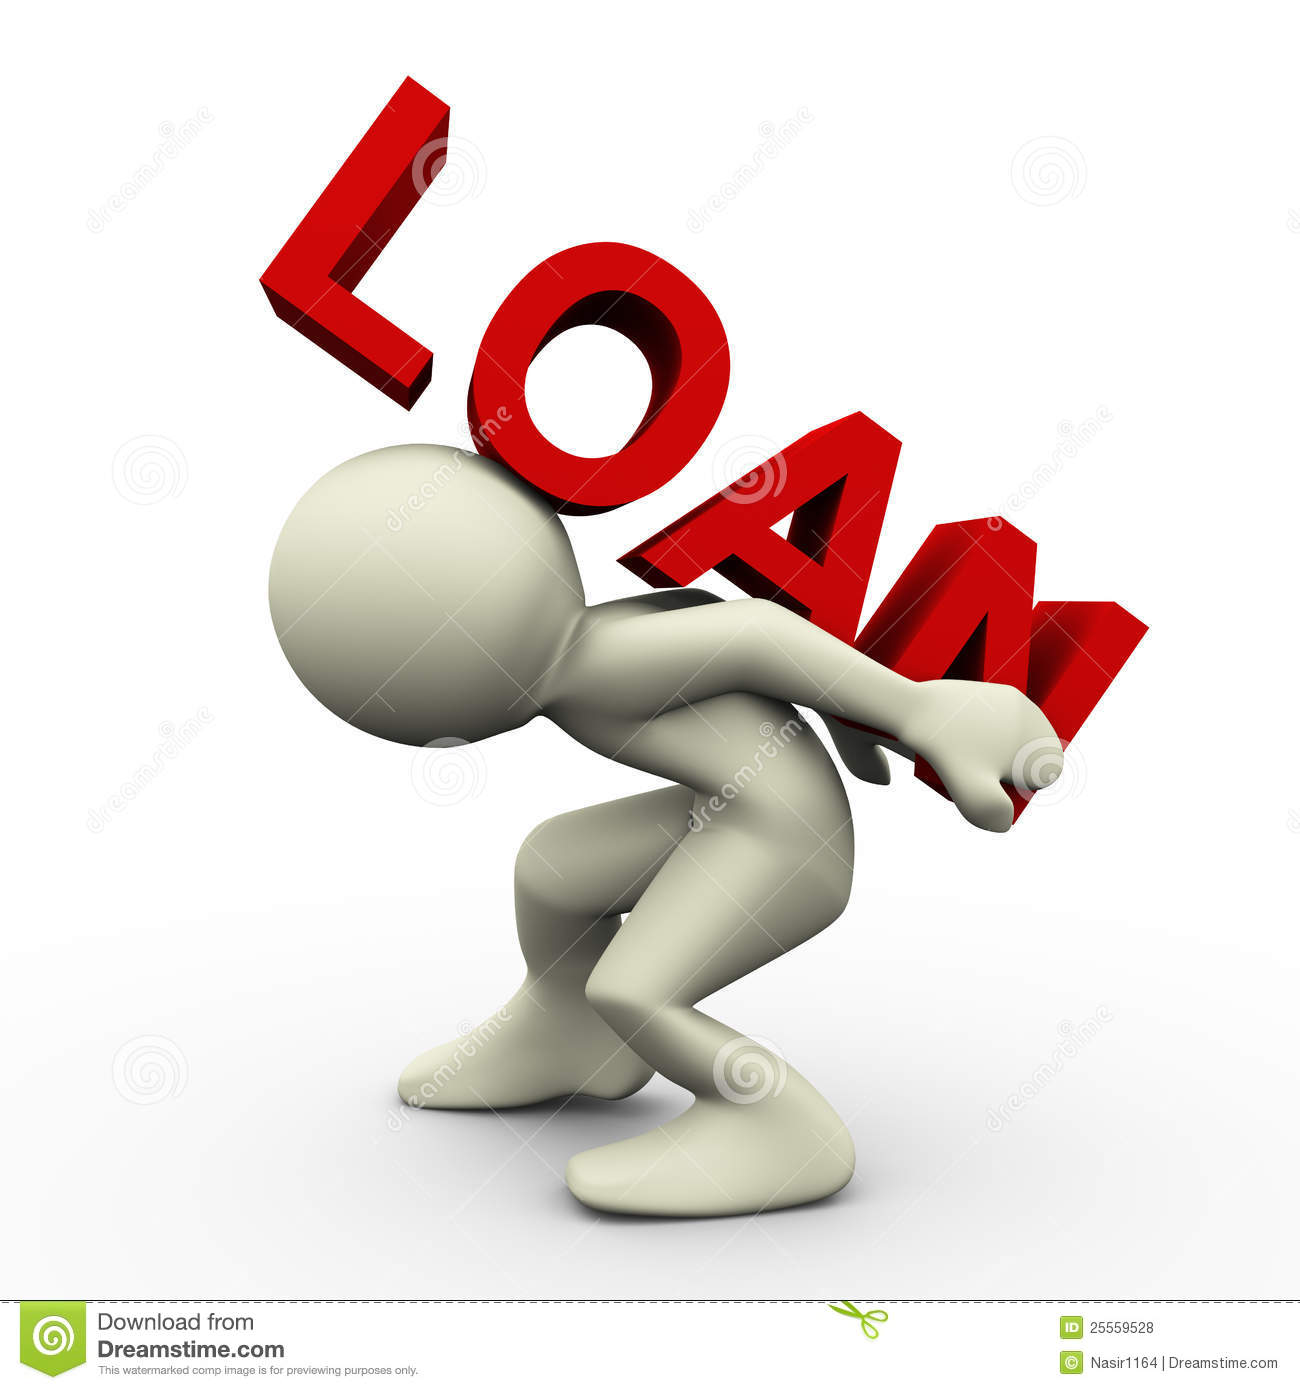 Loan clipart png Loan Payment Clipart - Clipart Kid png